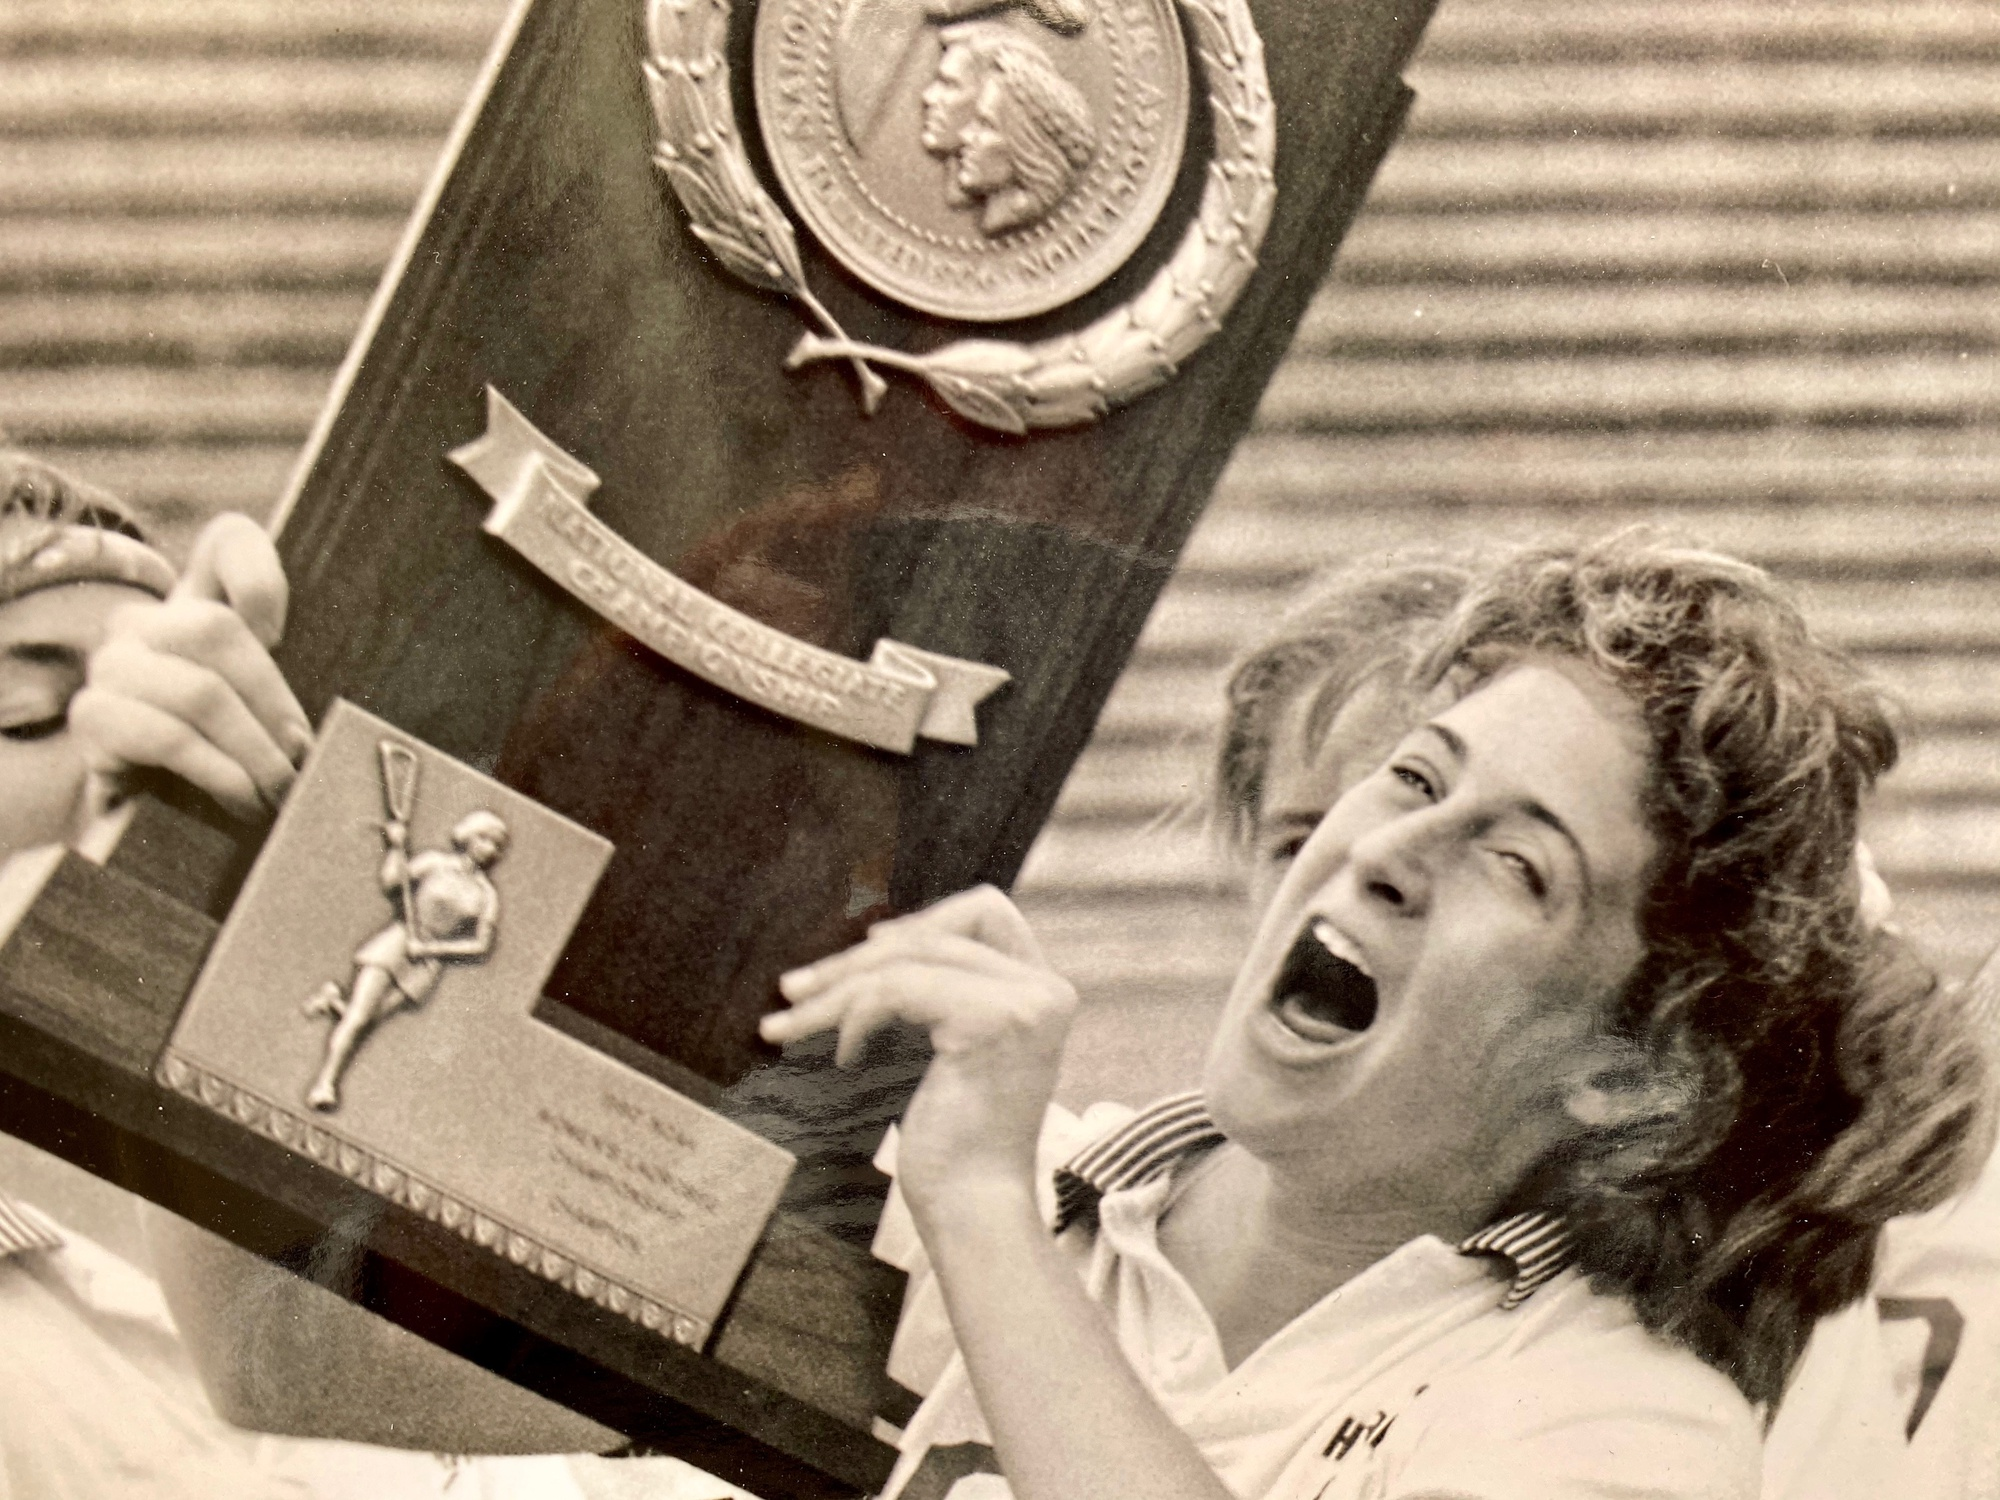 Julie Clifford Smail '90 holds the national championship trophy. Before the NCAA semifinal game, she took her organic chemistry exam in a hotel room and is now a doctor.